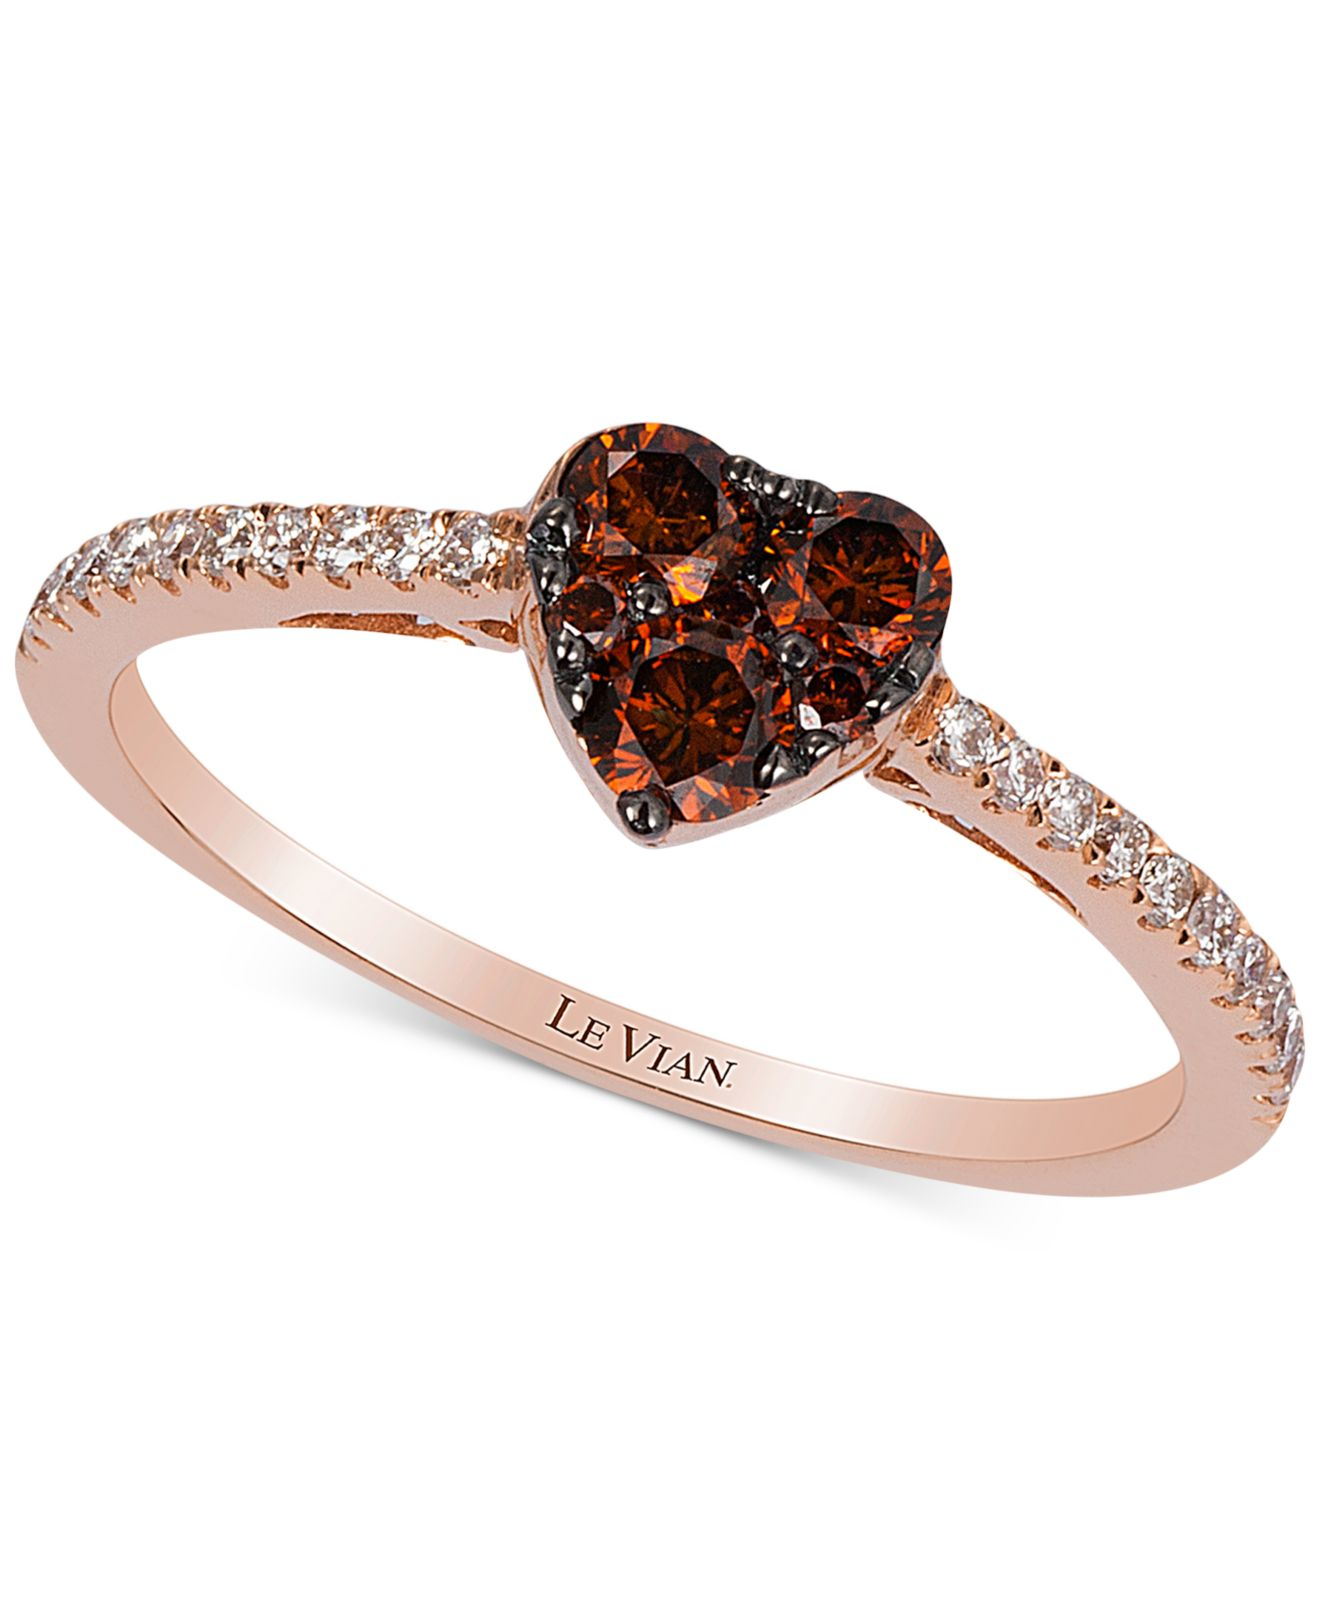 Le vian Exotics Chocolate And White Diamond Heart Ring 1 2ct t w